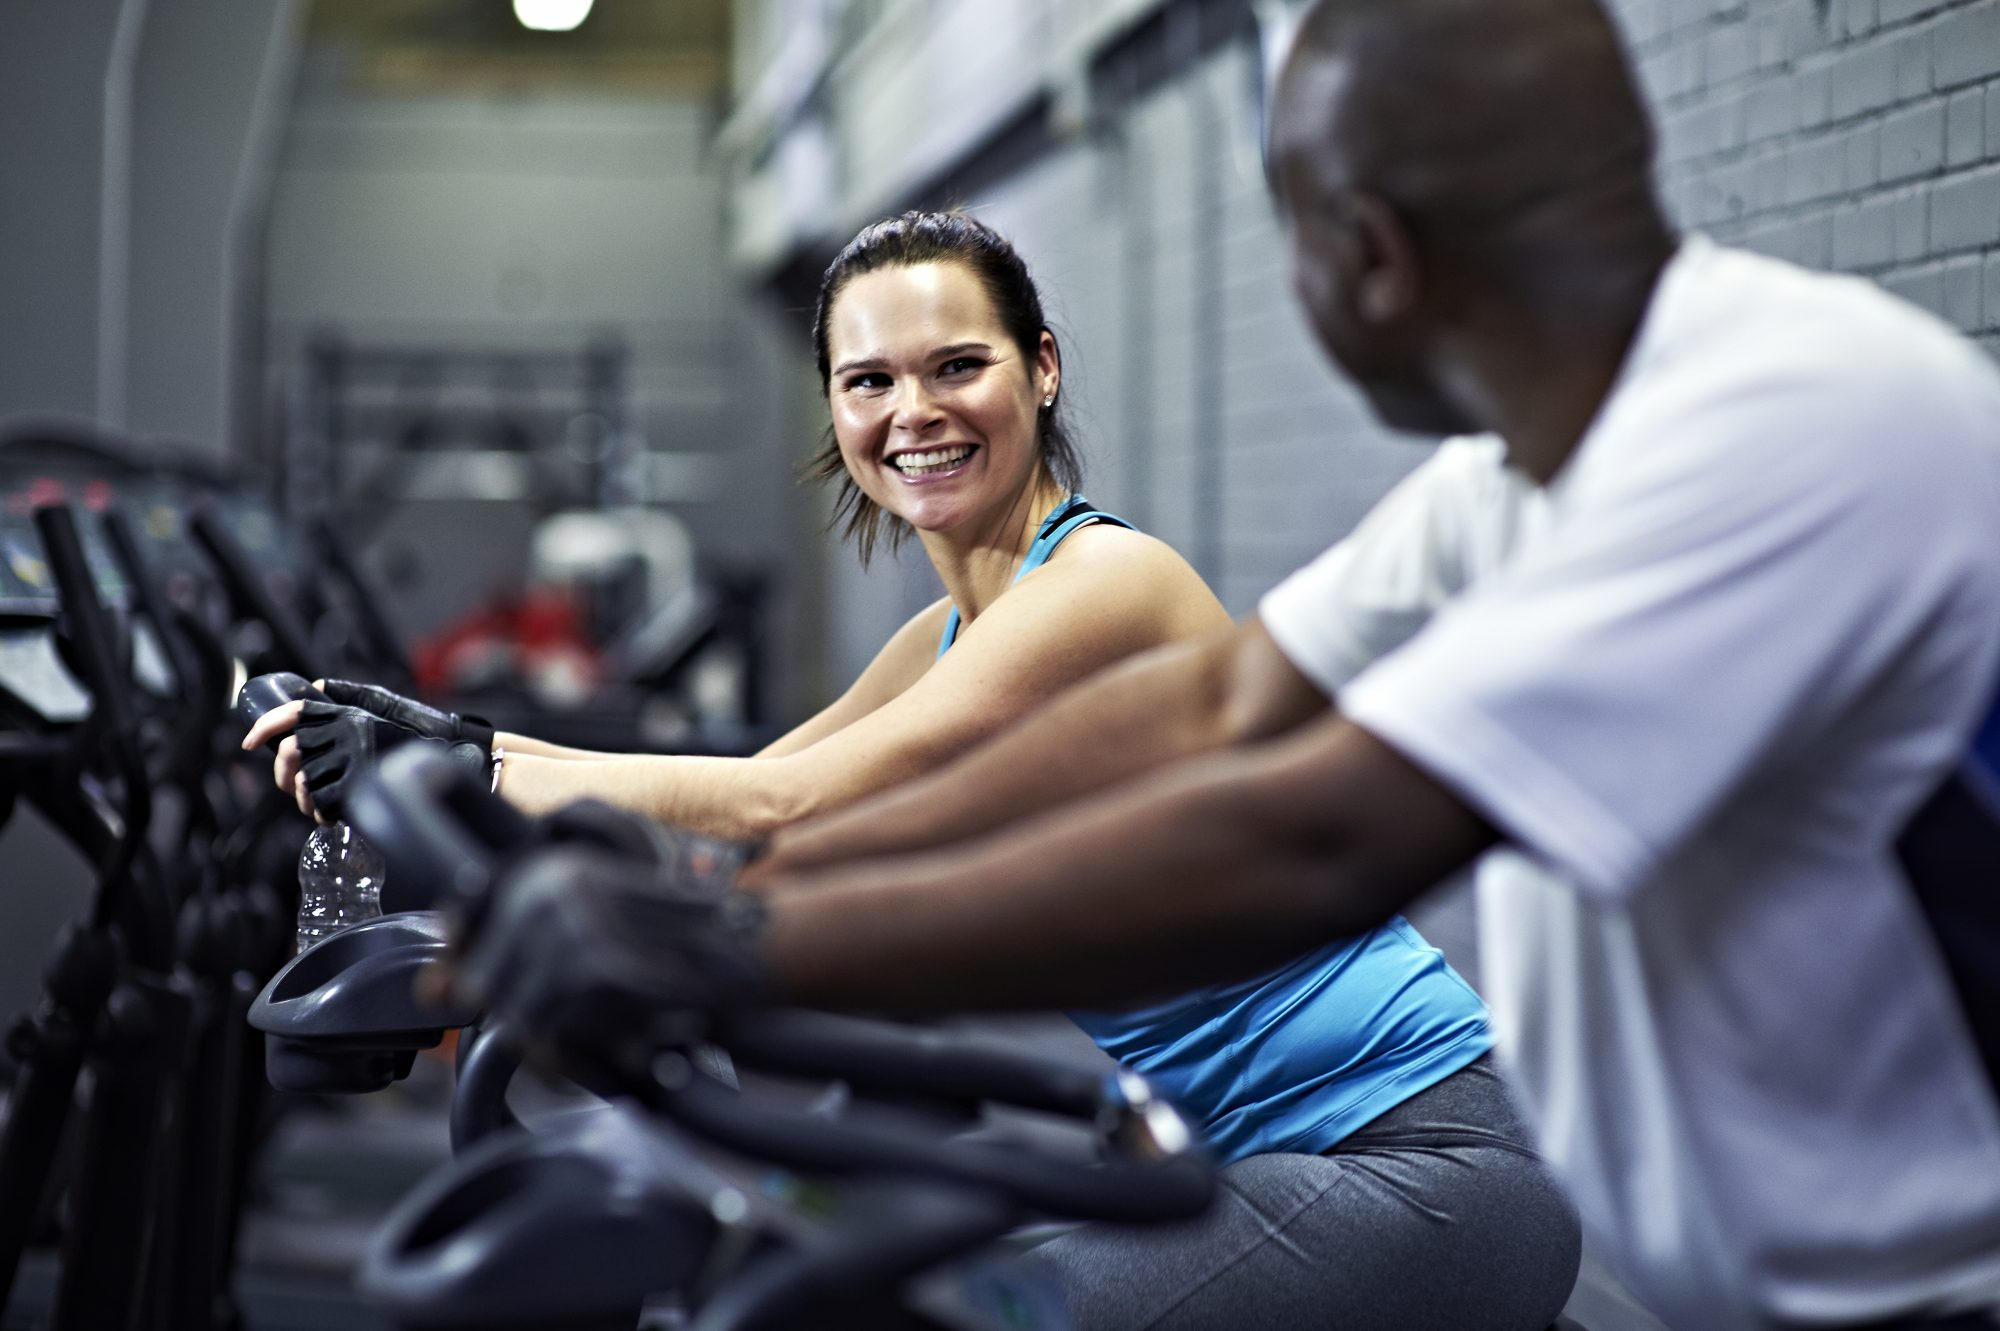 How Much Exercise Is Enough if You Have Type 2 Diabetes?